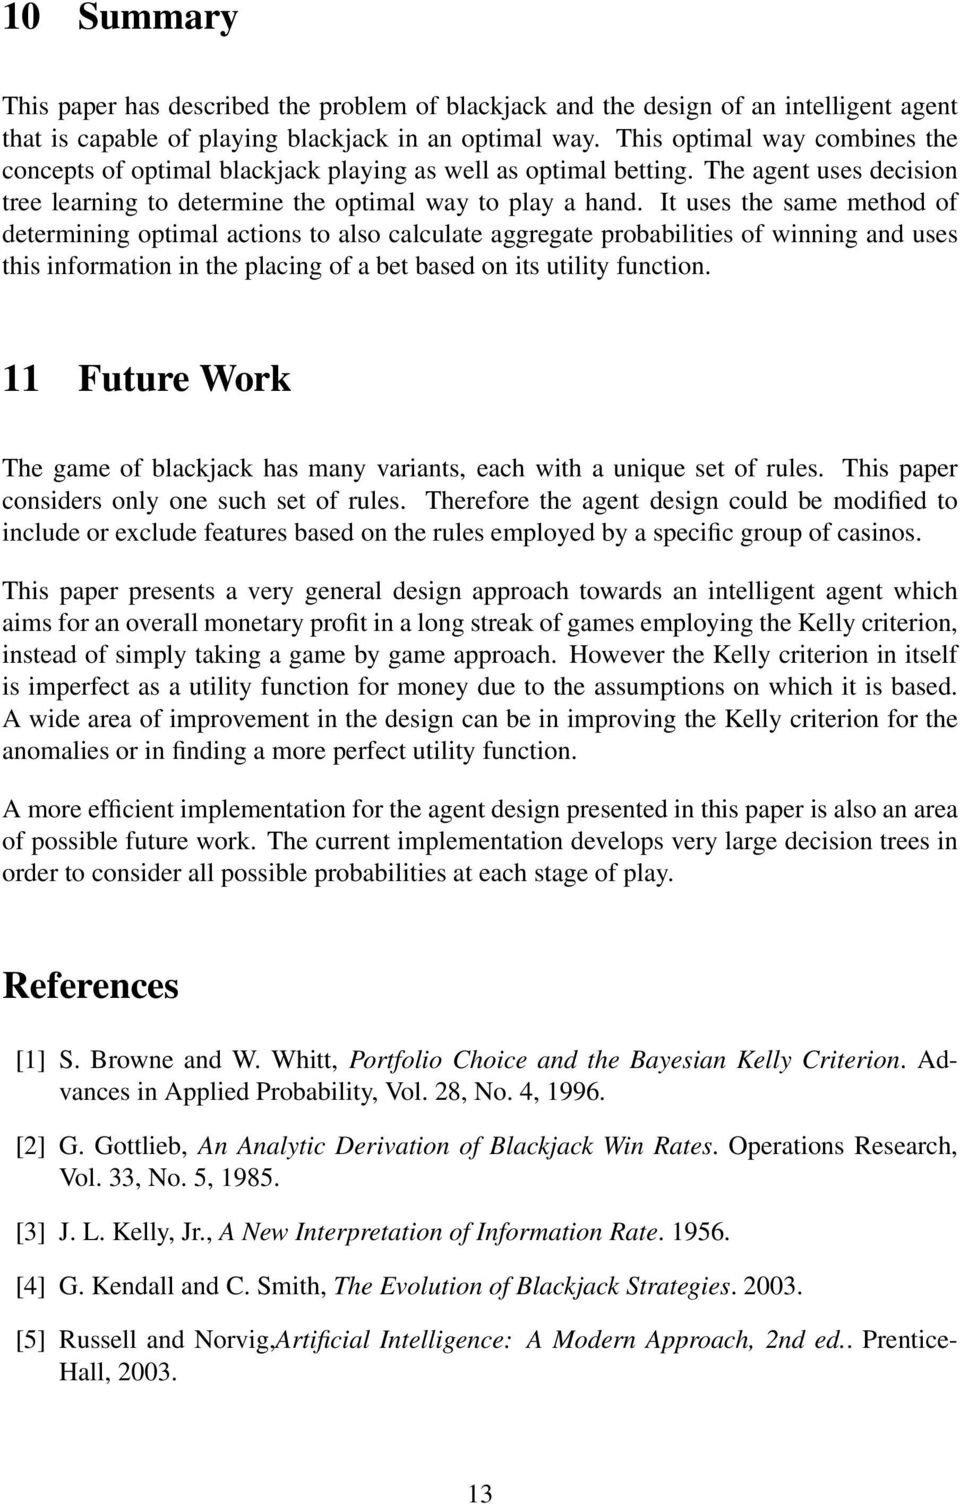 russell artificial intelligence pdf